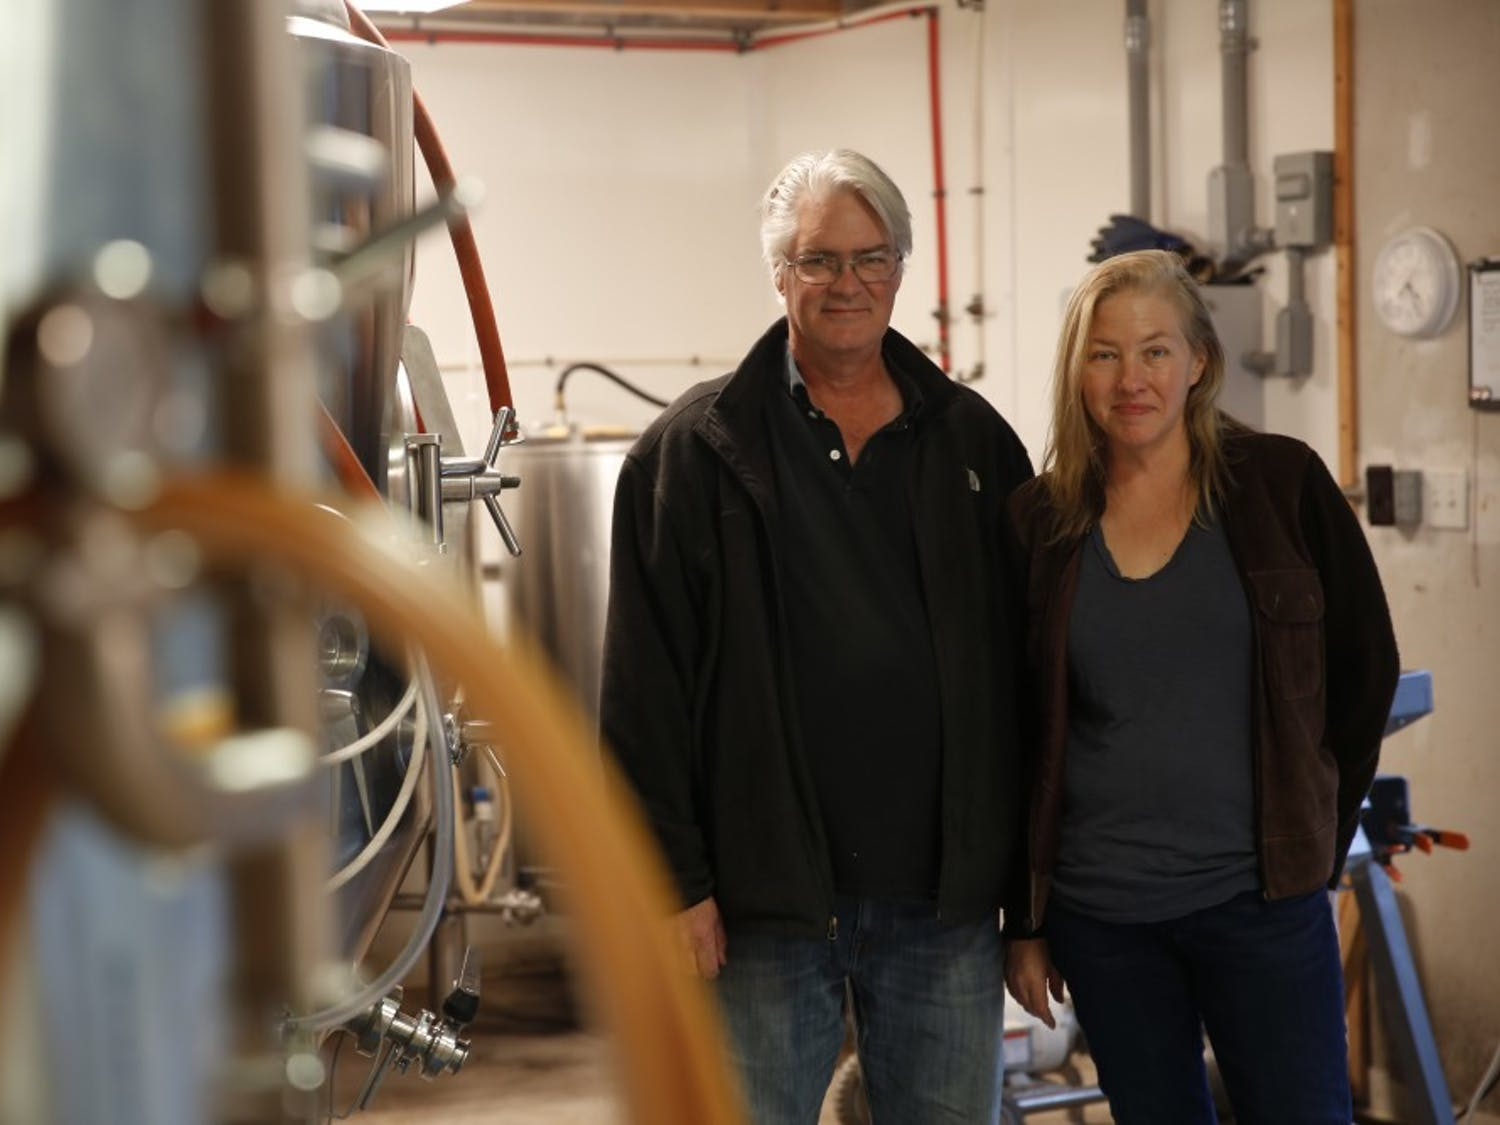 Tim Harper (left) and Beth Boylan (right) are the co-founders of the Durham-based Starpoint Brewery, one of many local breweries in the area growing out of the recent explosion of brewery culture.